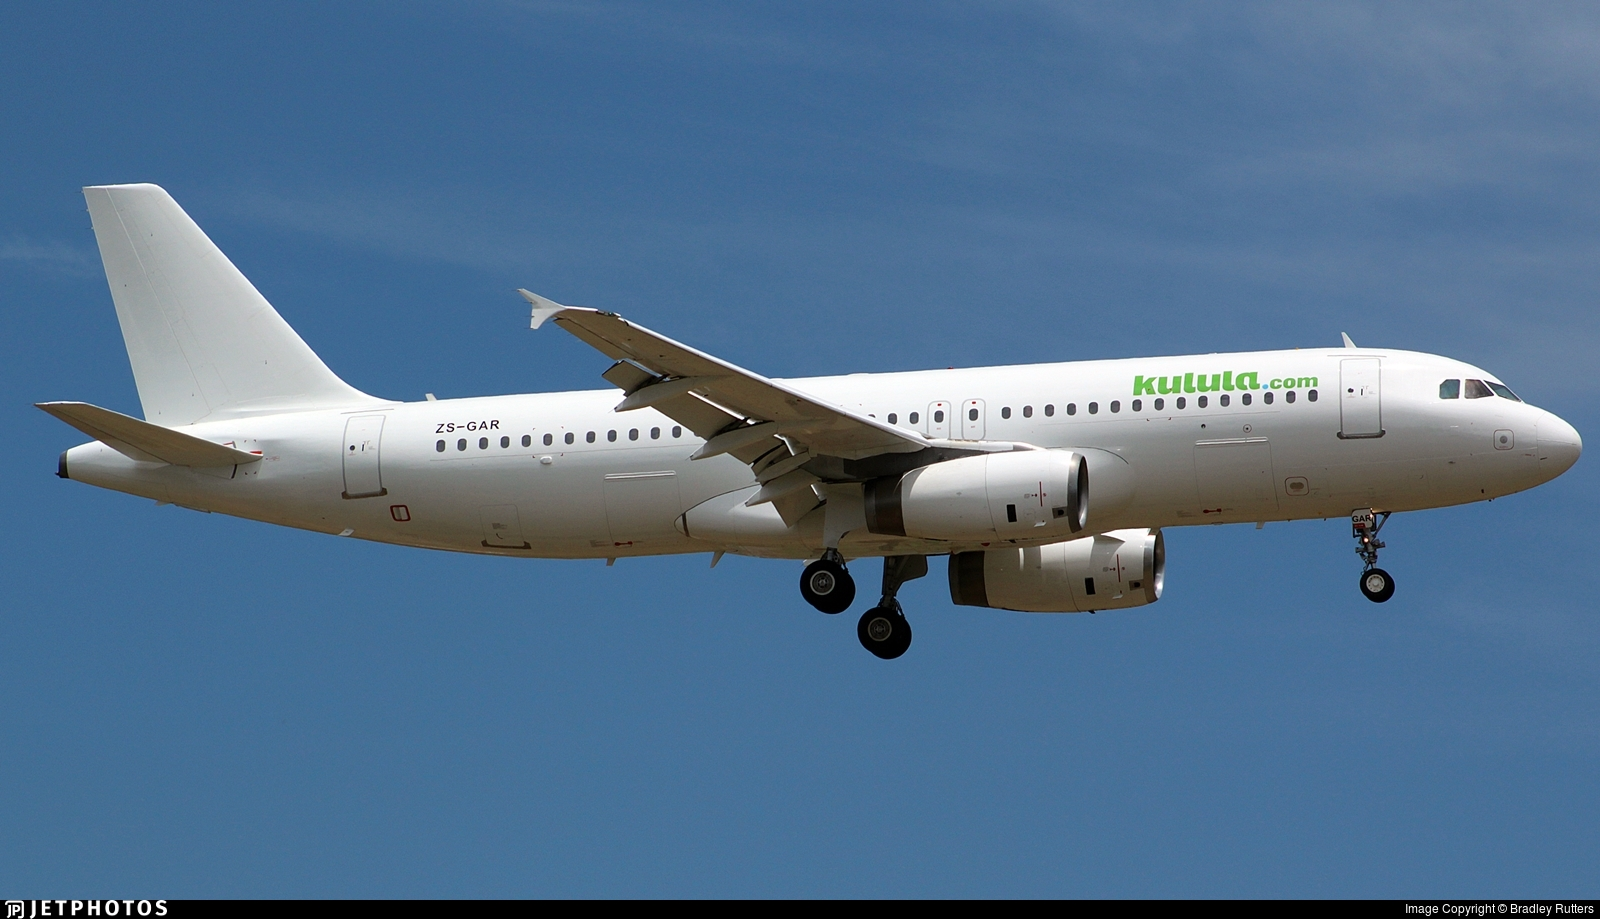 ZS-GAR - Airbus A320-231 - Kulula.com (Global Aviation)